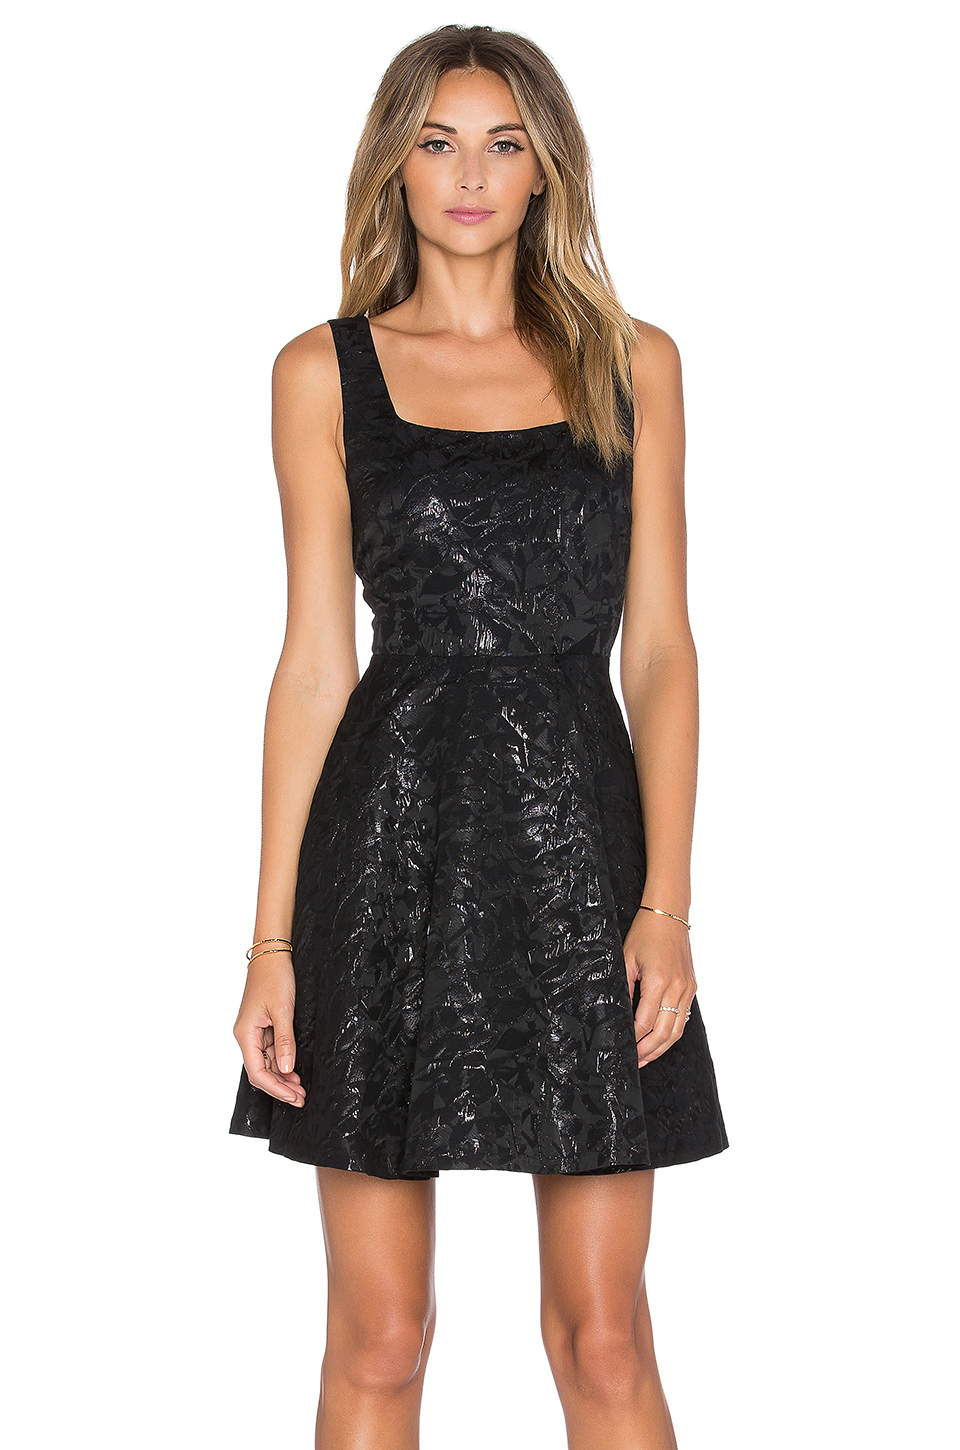 Diane von furstenberg Minnie Jacquard Dress in Black